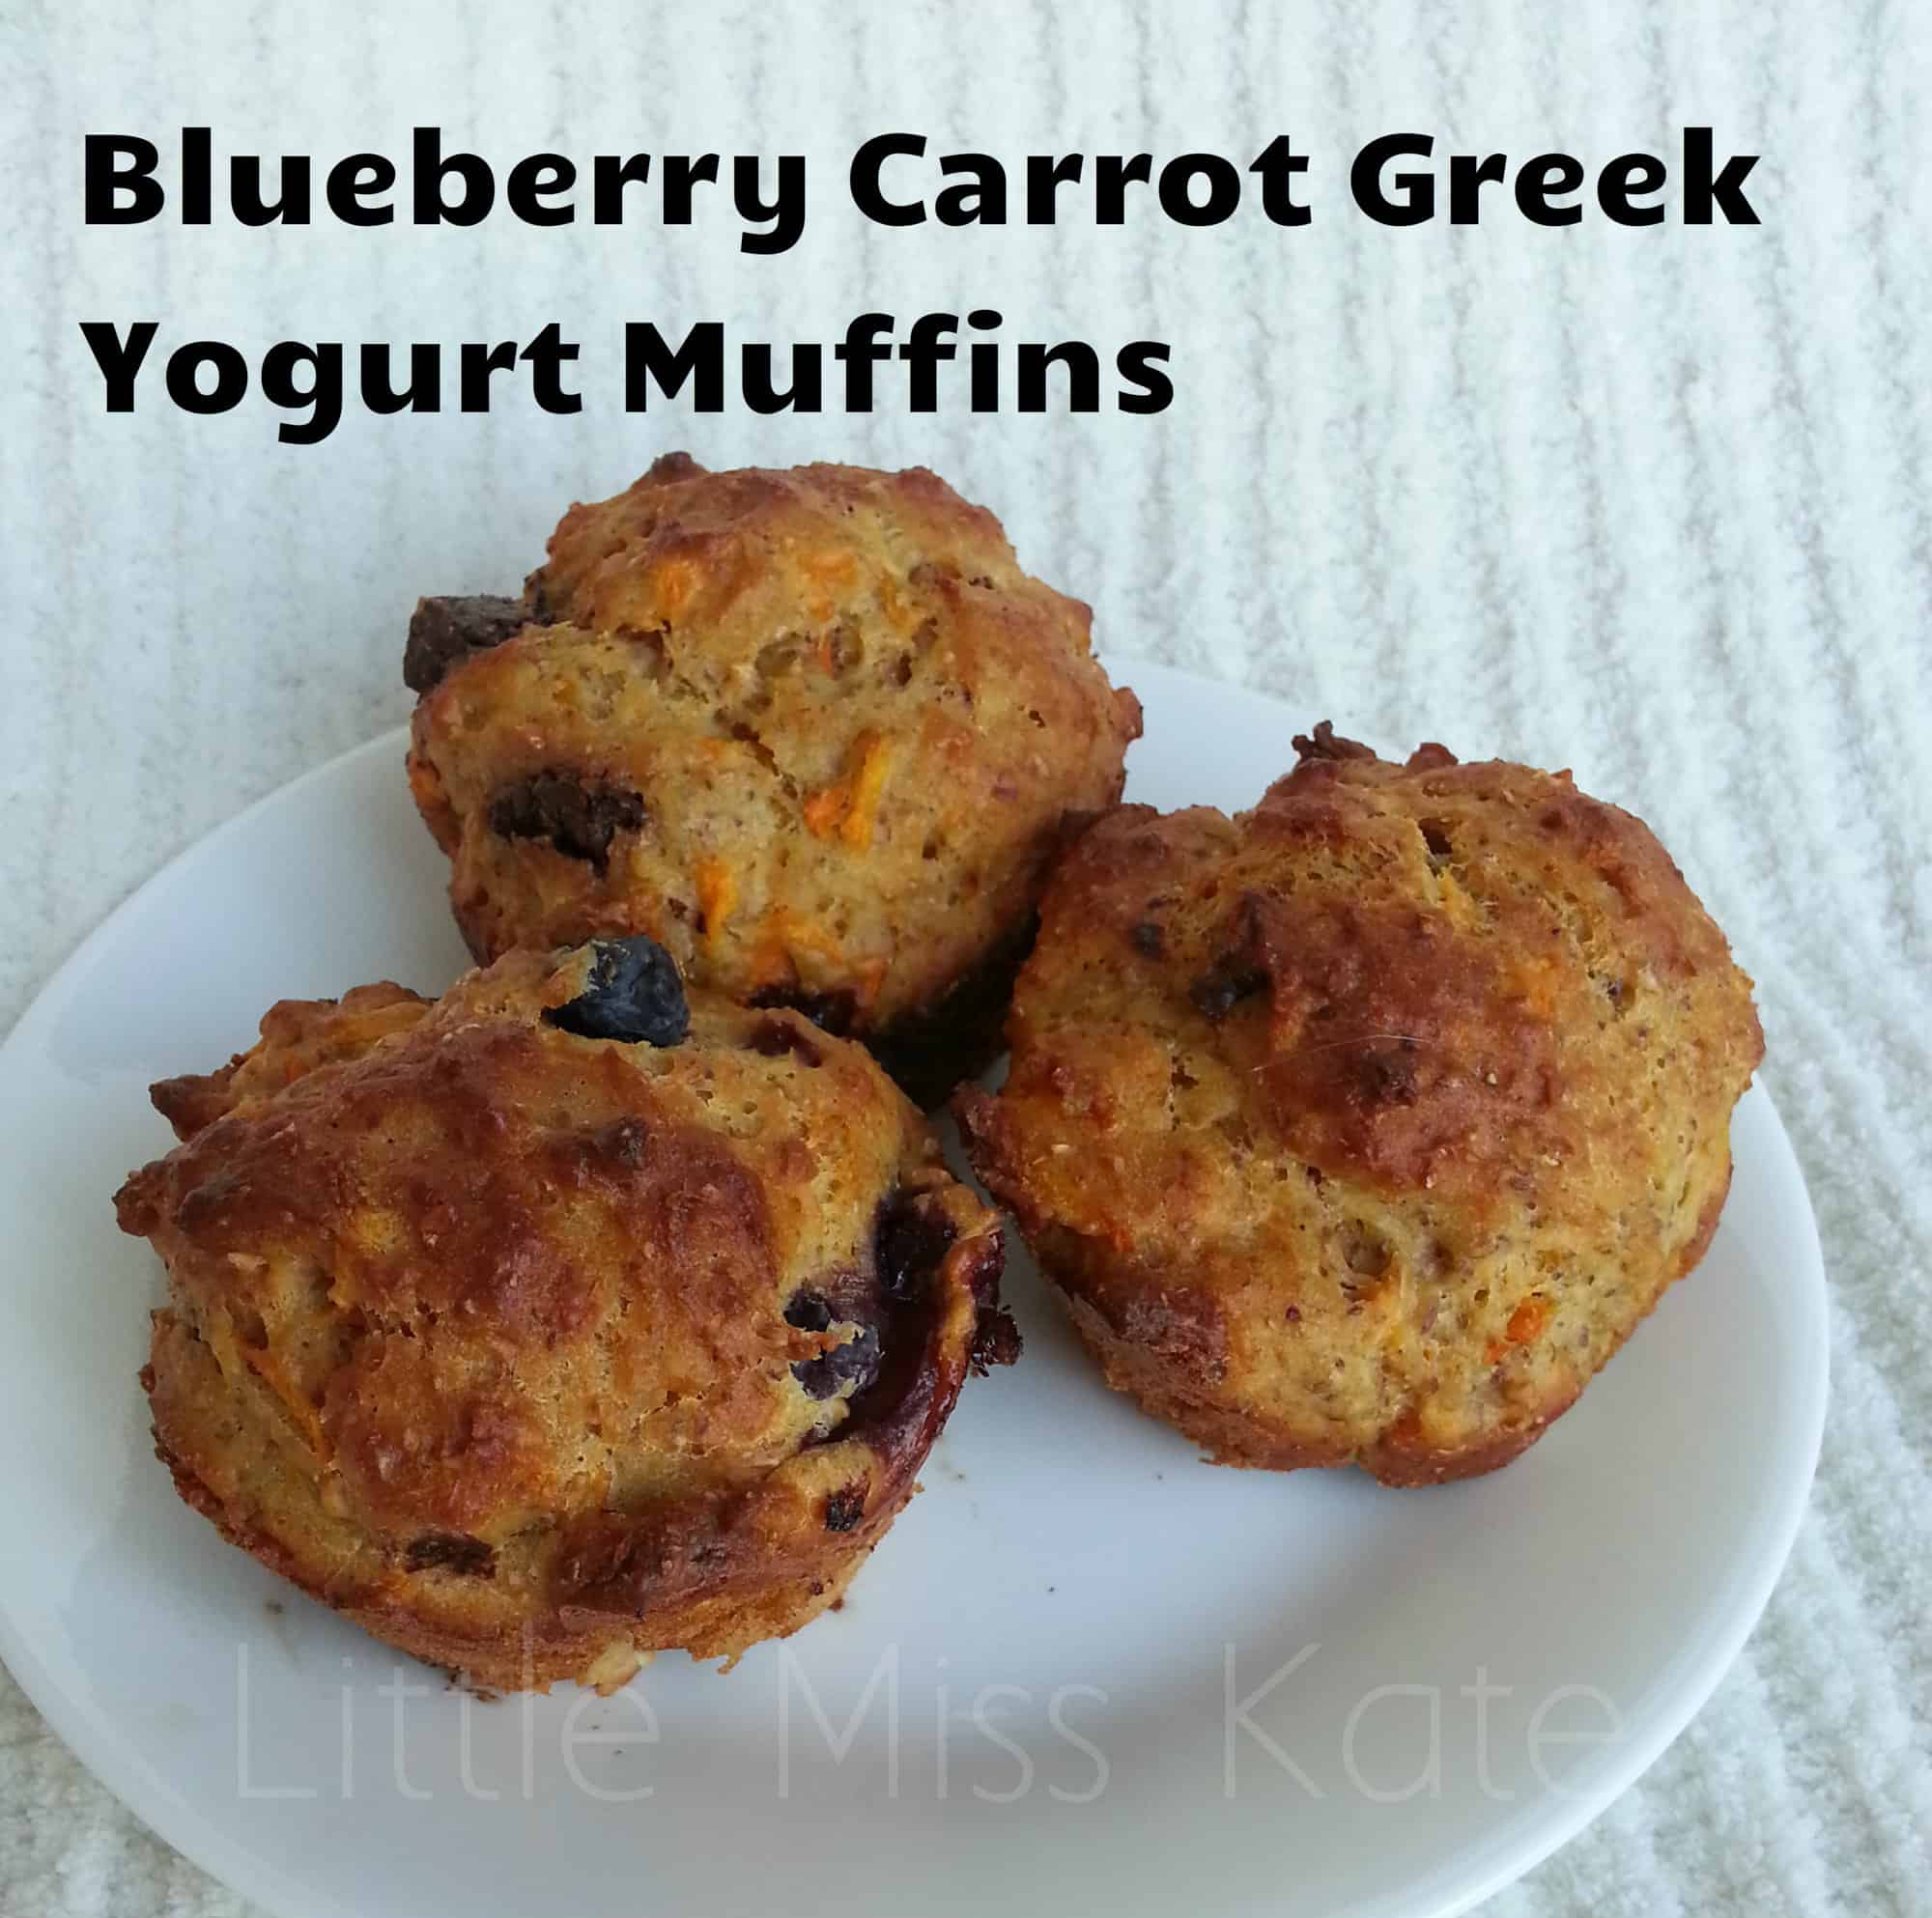 Blueberry Carrot Muffins with yogurt